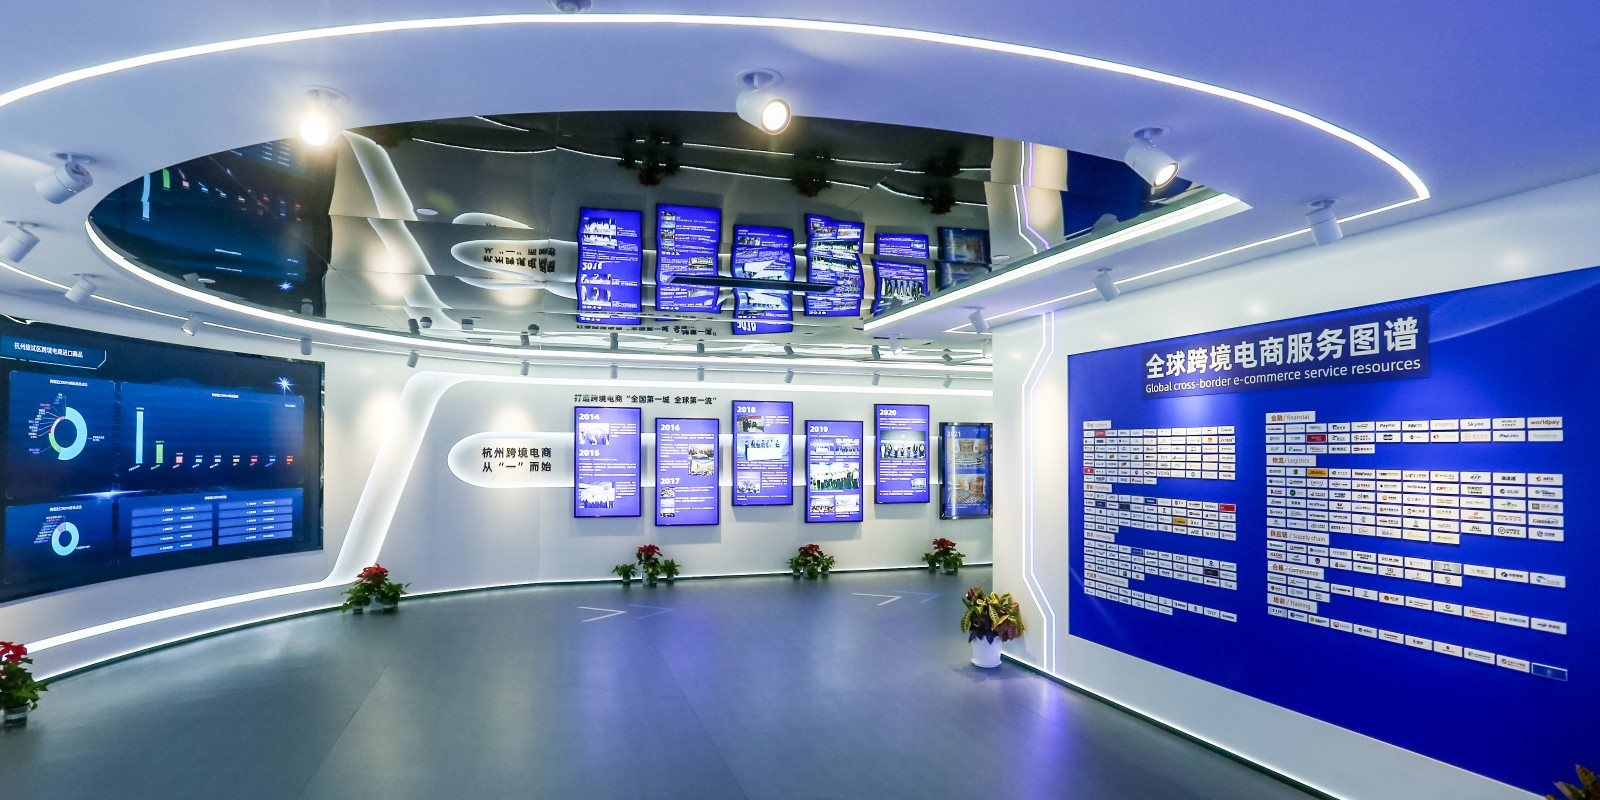 Accelerate high-quality development, Hangzhou opens the Global Cross-Border E-Commerce Knowledge Service Center